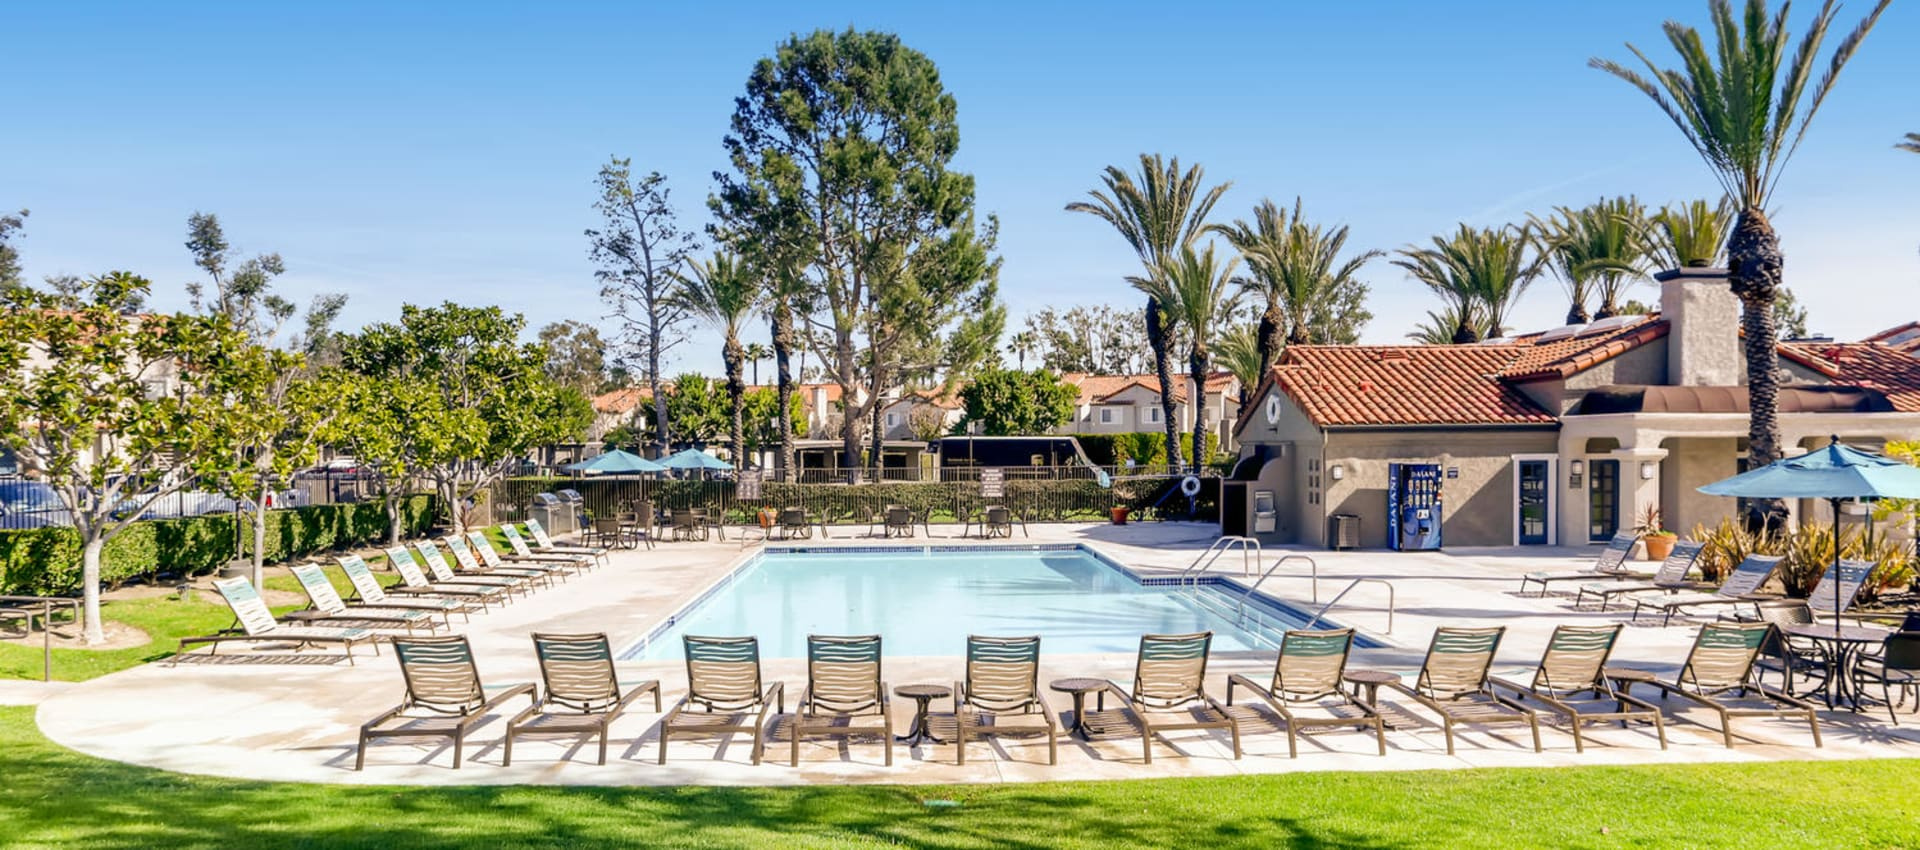 Expansive Pool Deck with Spas